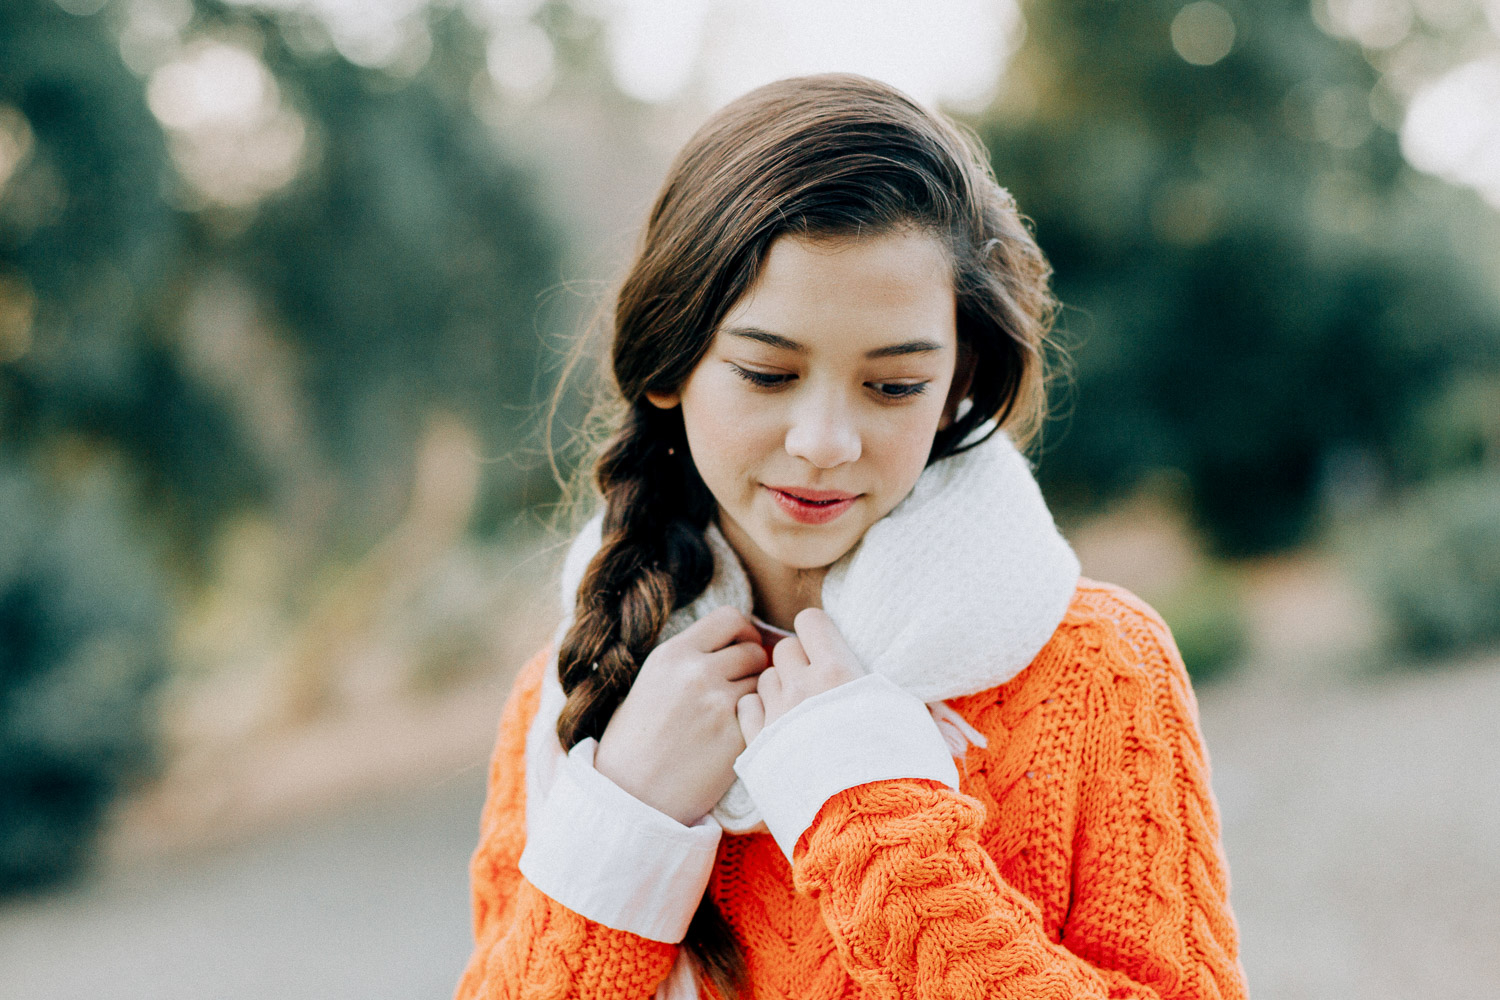 Image of an orange sweater girl looks down